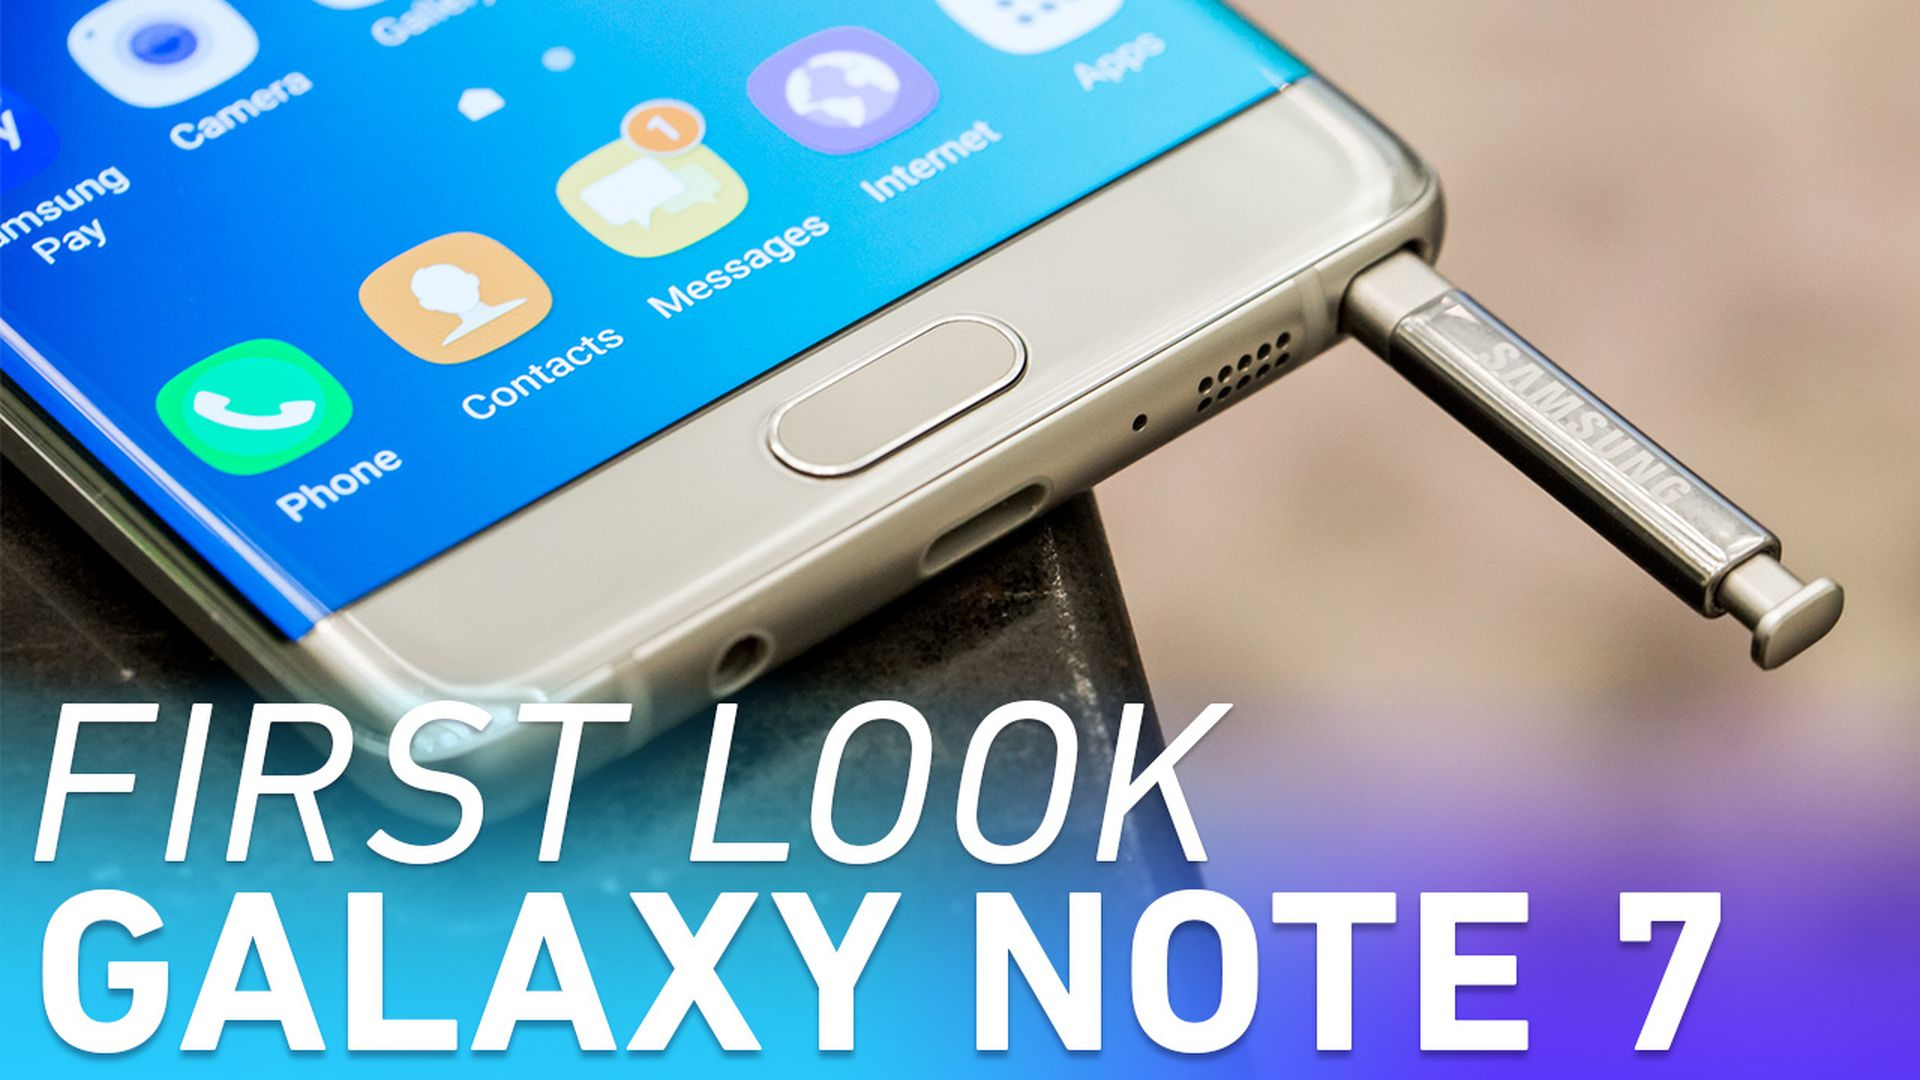 Samsung Galaxy Note 7 first look